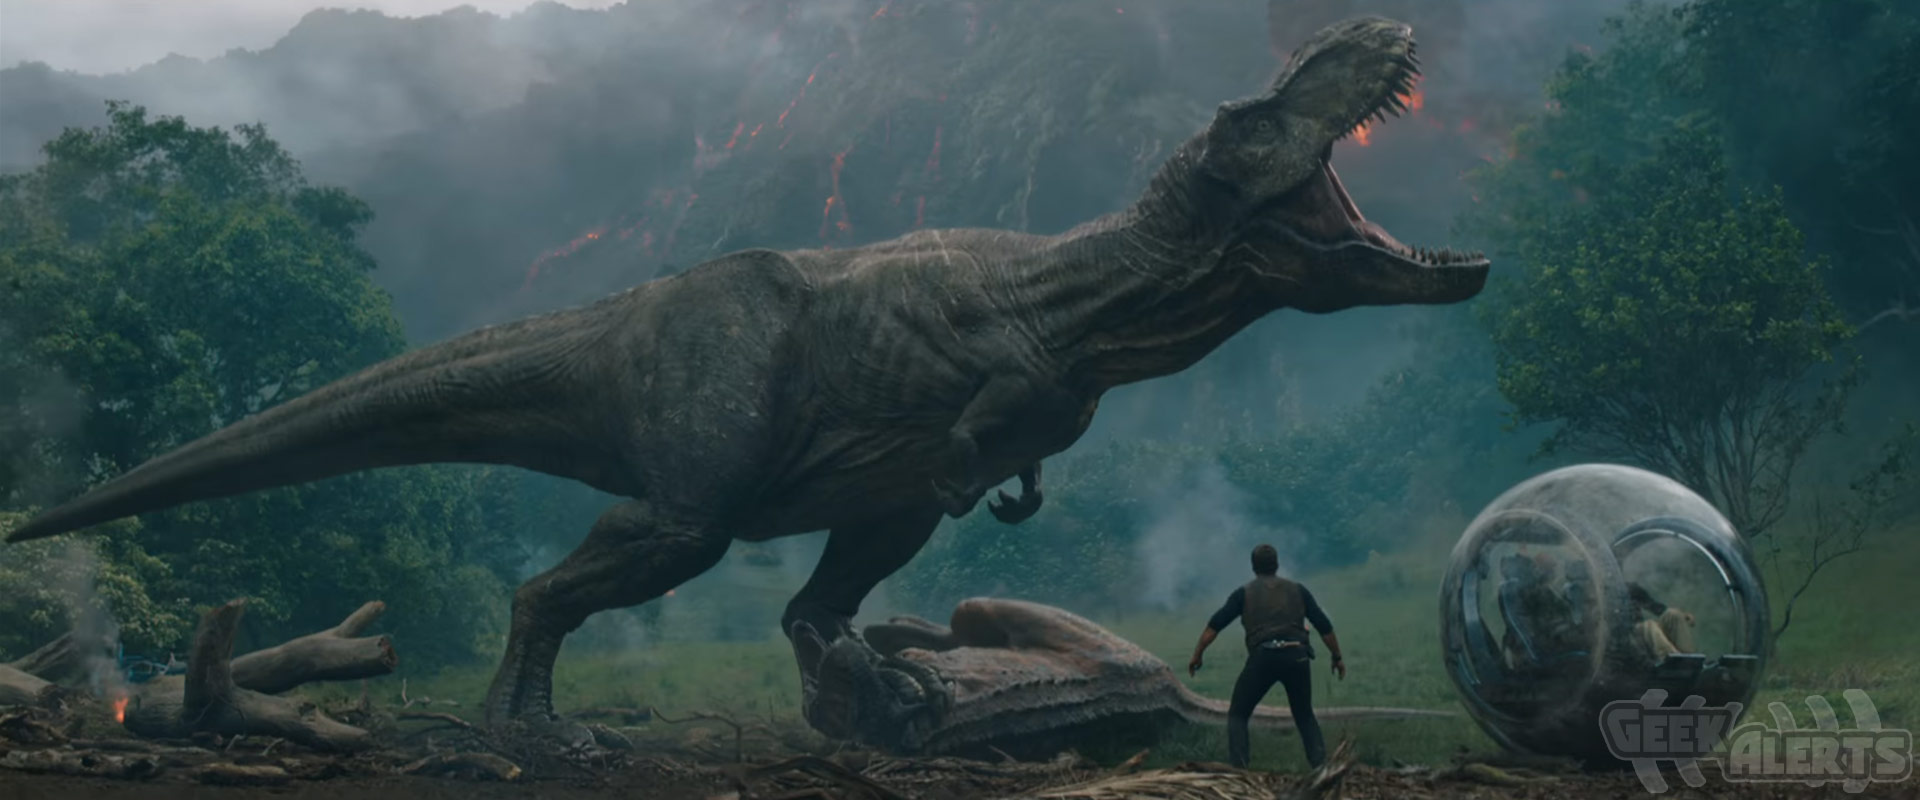 Jurassic World: Fallen Kingdom Trailer #2